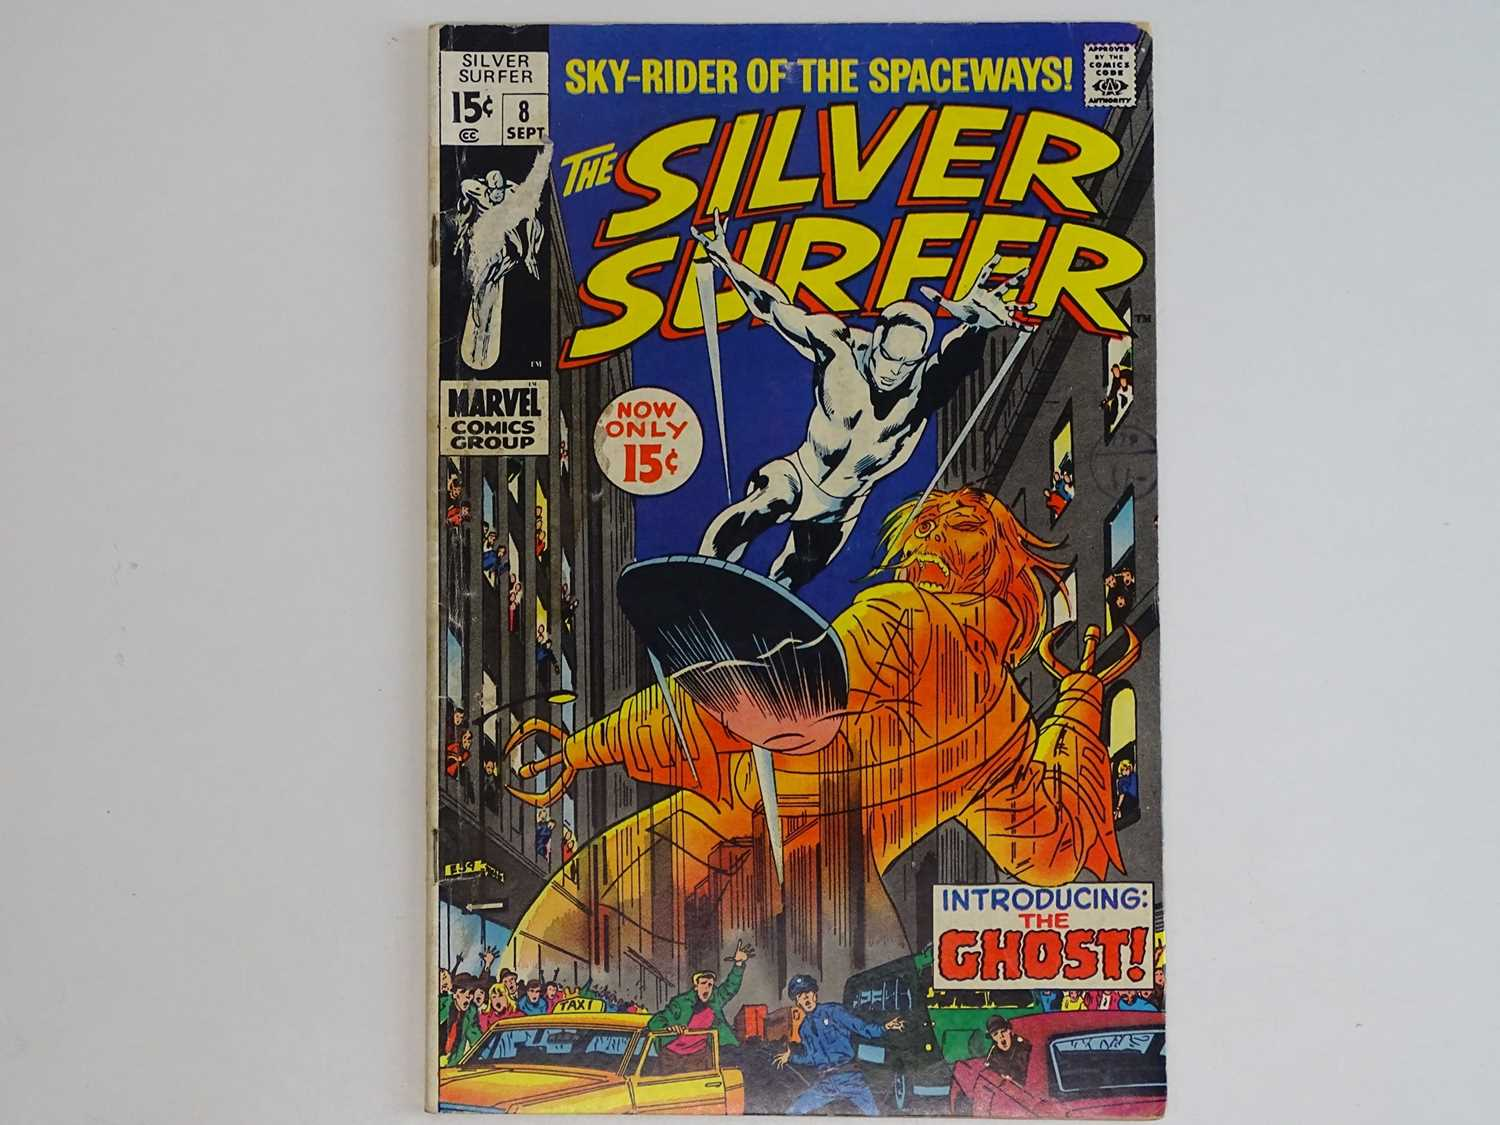 SILVER SURFER #8 - (1969 - MARVEL - UK Cover Price) First appearance of the Flying Dutchman +